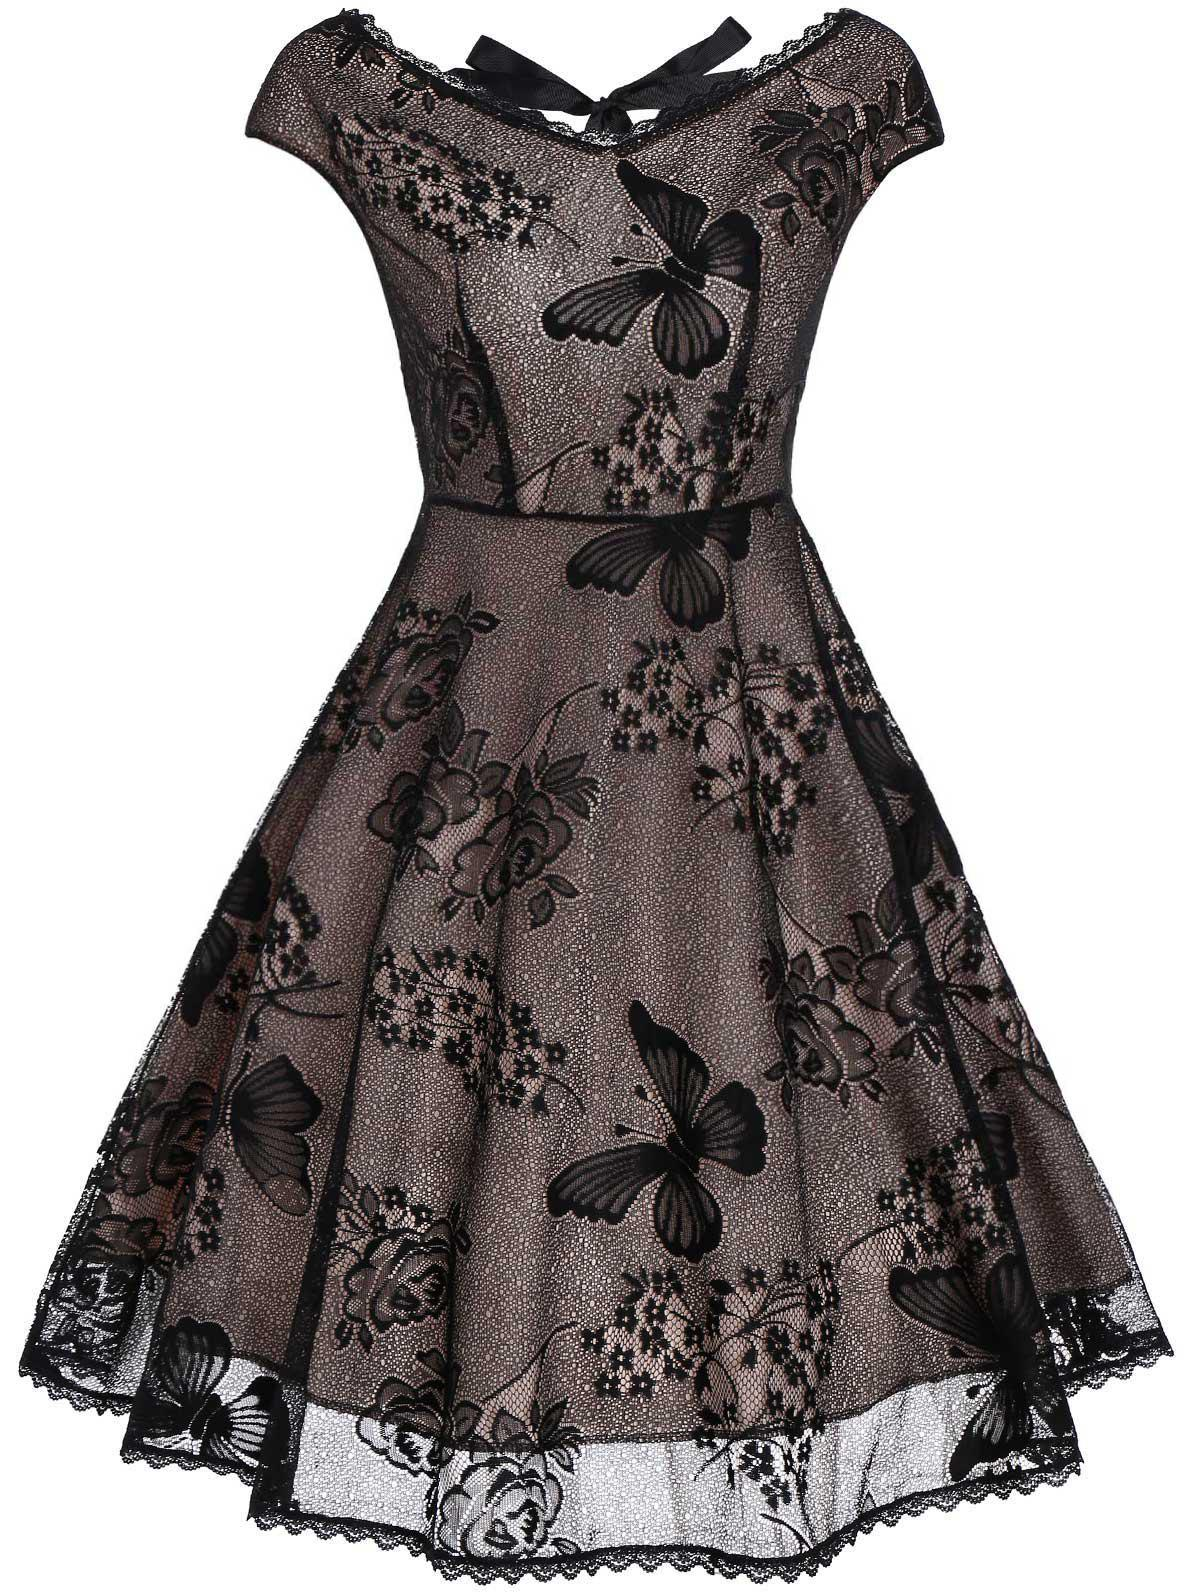 Vintage Cutout Lace Fit and Flare Dress lace overlay fit and flare dress